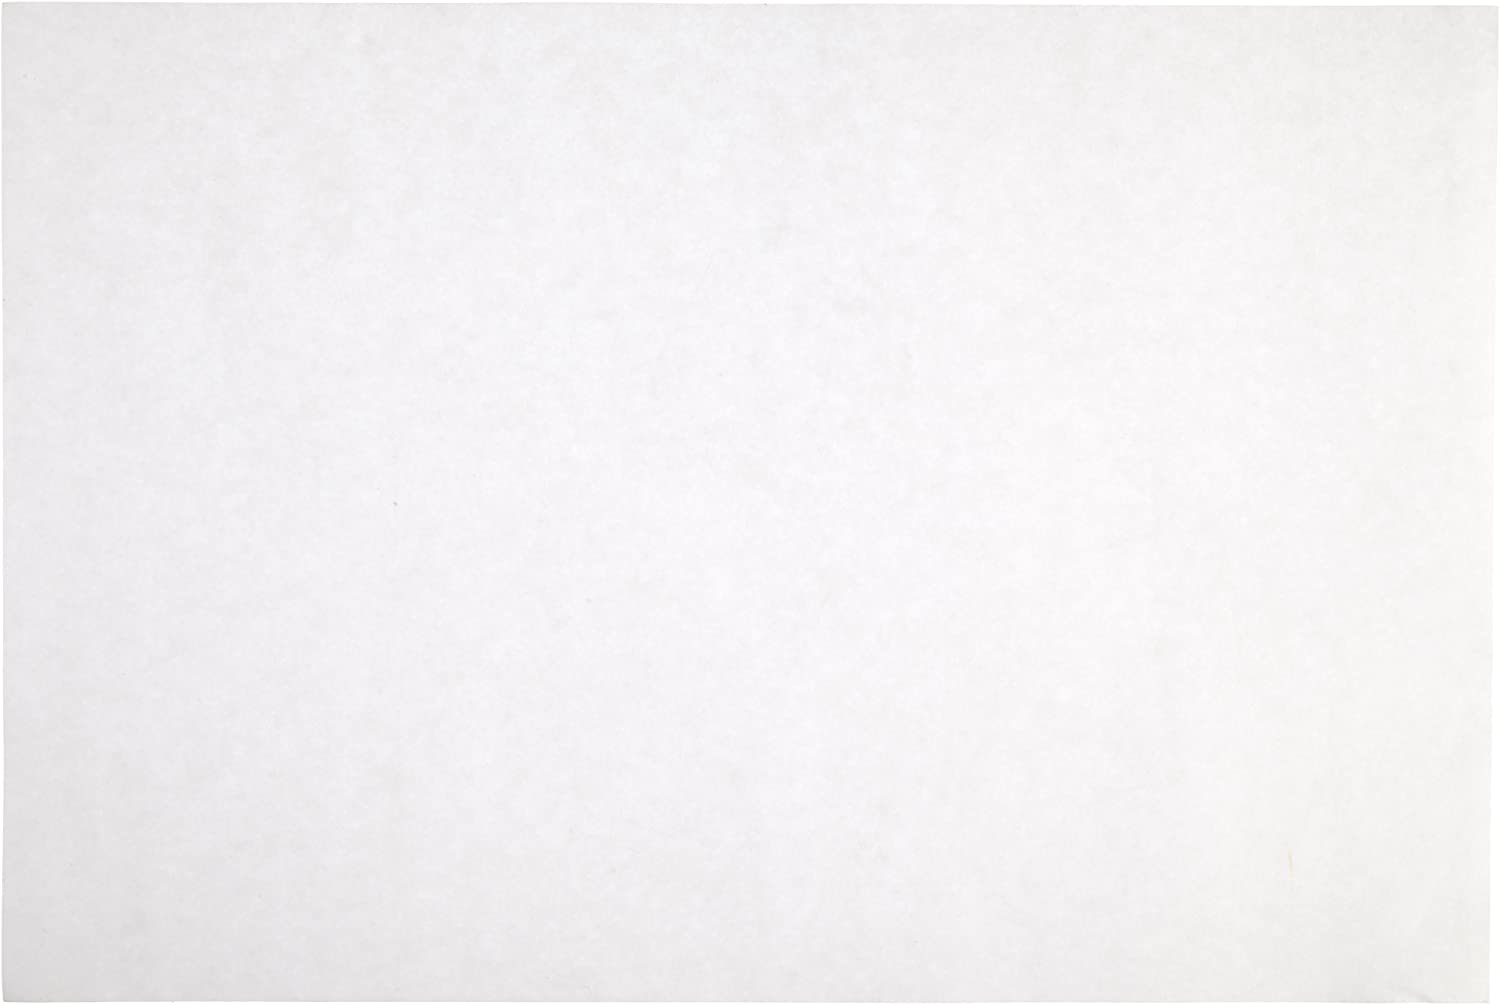 Sax Sulphite Drawing Paper 80 lb Pack of 500-053943 Extra-White 9 x 12 Inches 2 Sets